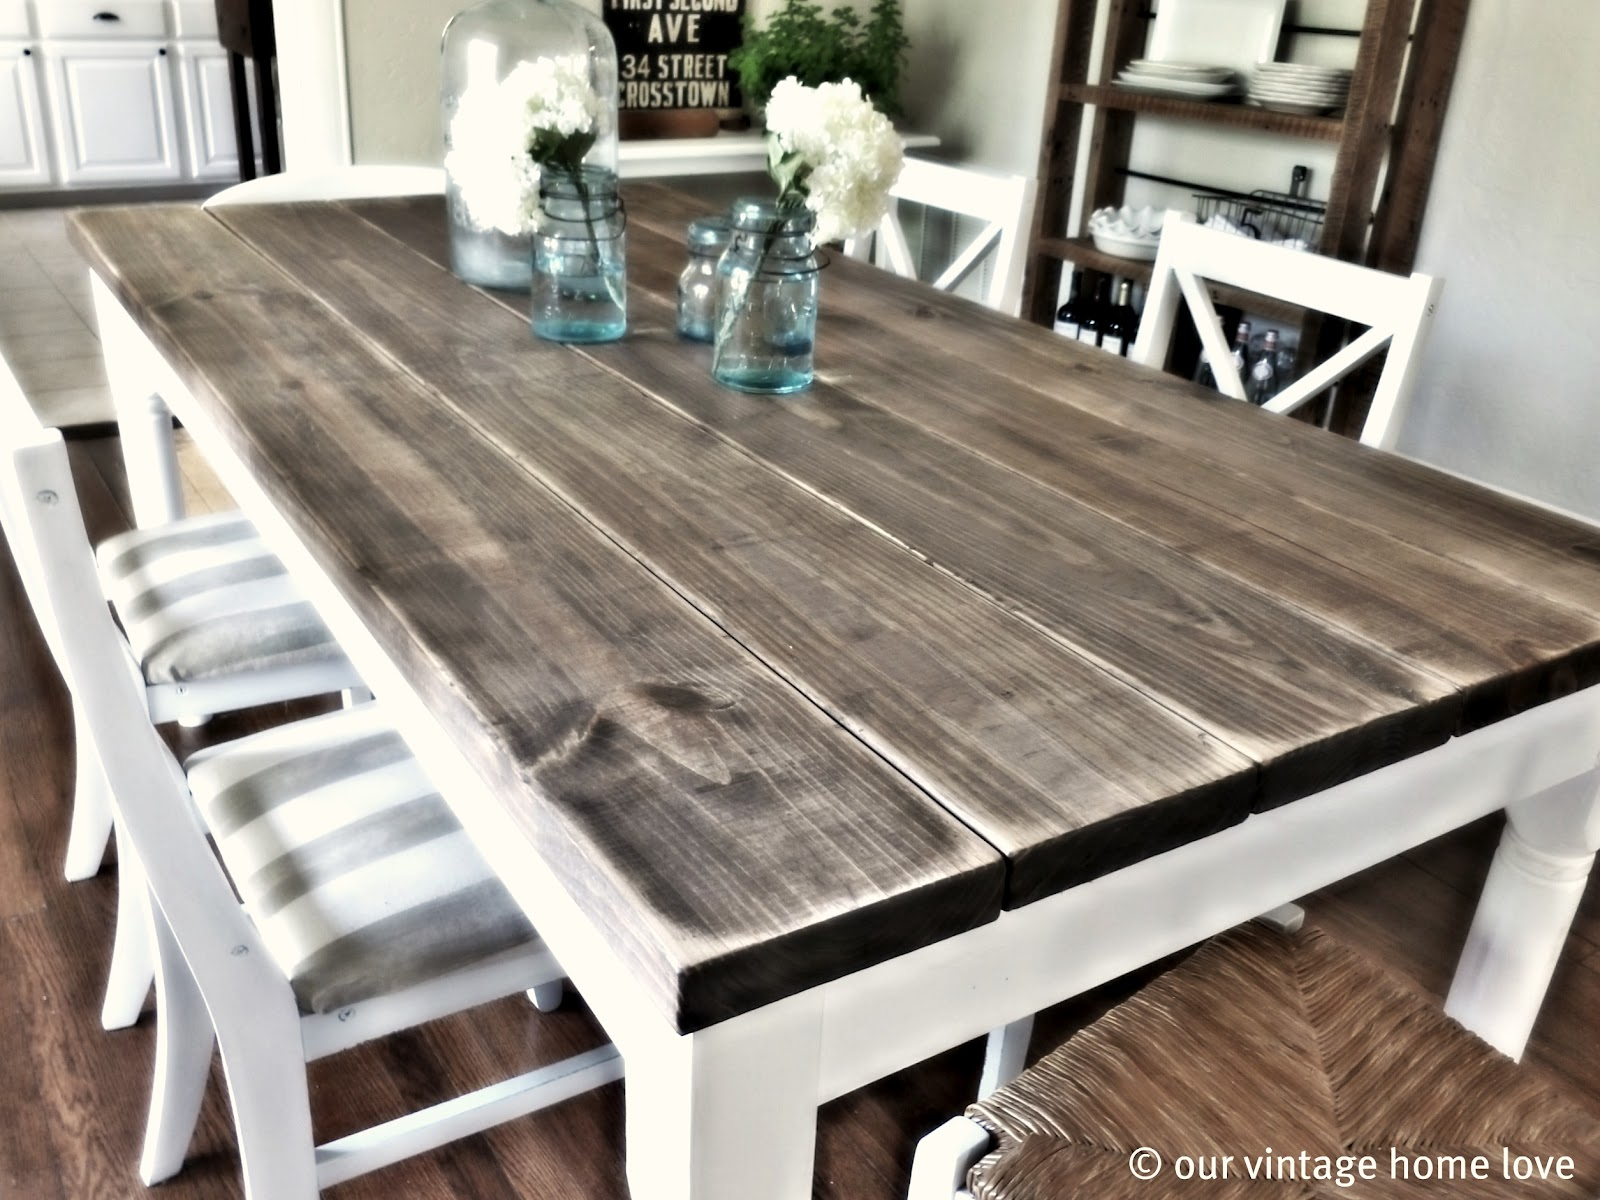 our vintage home love Dining Room Table Tutorial